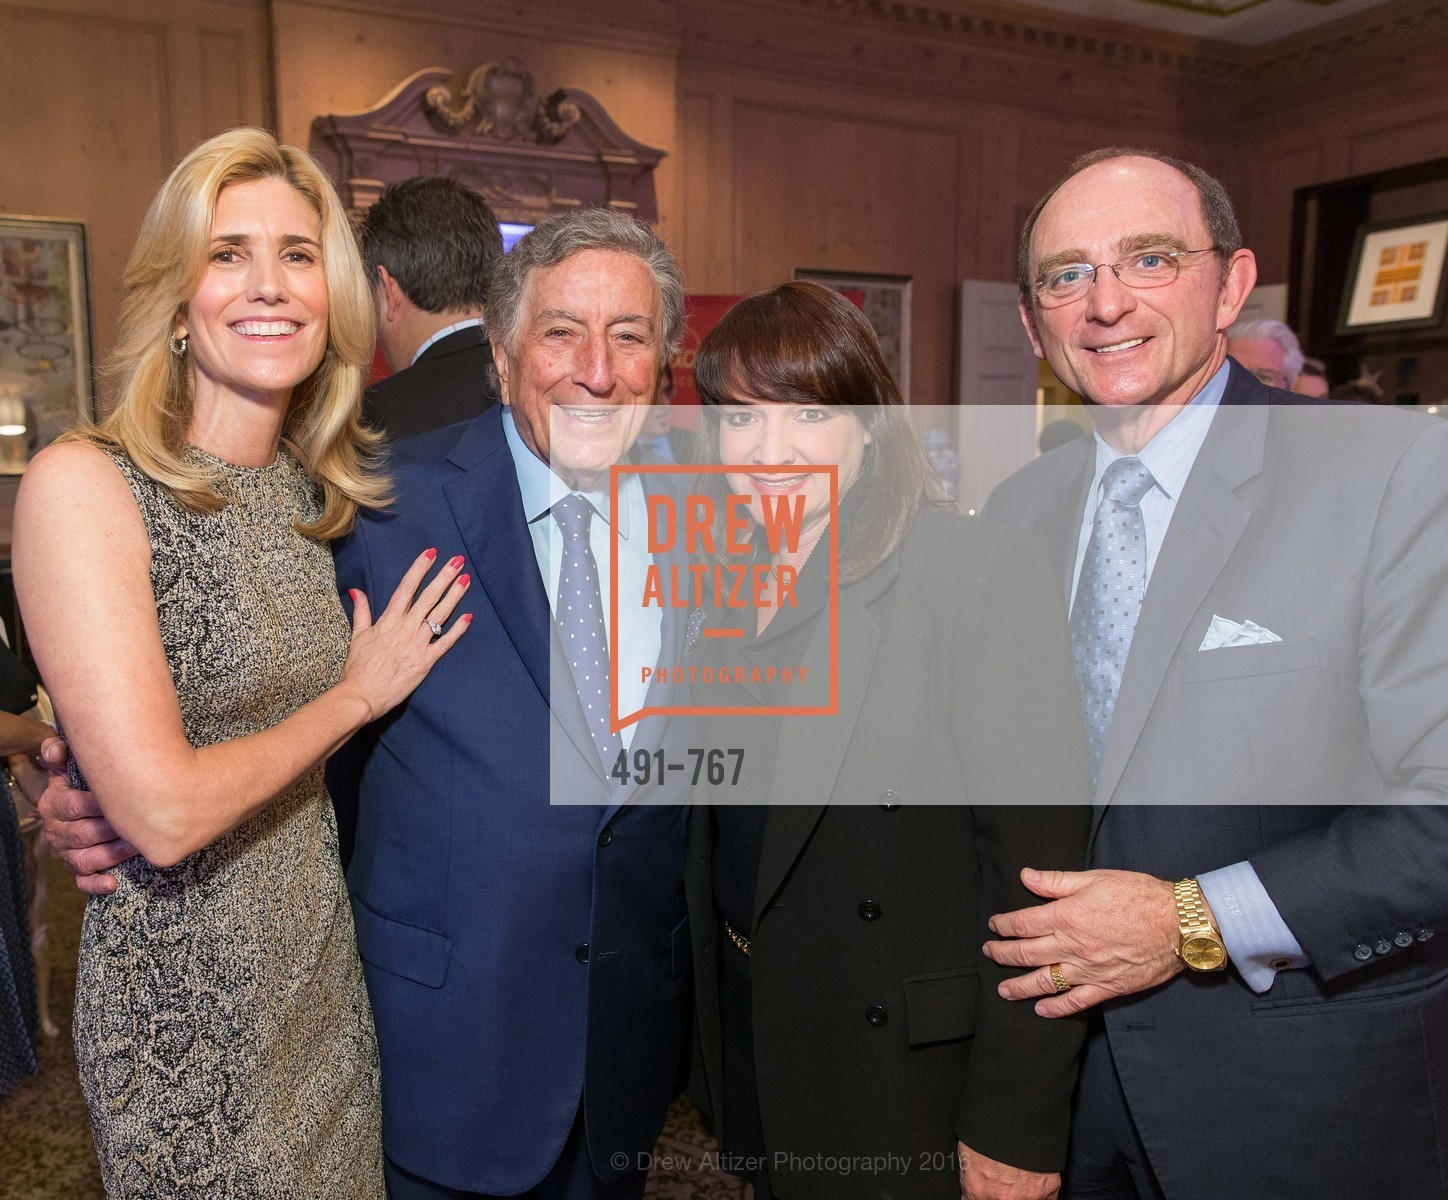 Susan Benedetto, Tony Bennett, Barbara Klein, Tom Klein, A Special Reception with Tony Bennett, The Fairmont, San Francisco, The Penthouse Suite, January 26th, 2016,Drew Altizer, Drew Altizer Photography, full-service agency, private events, San Francisco photographer, photographer california